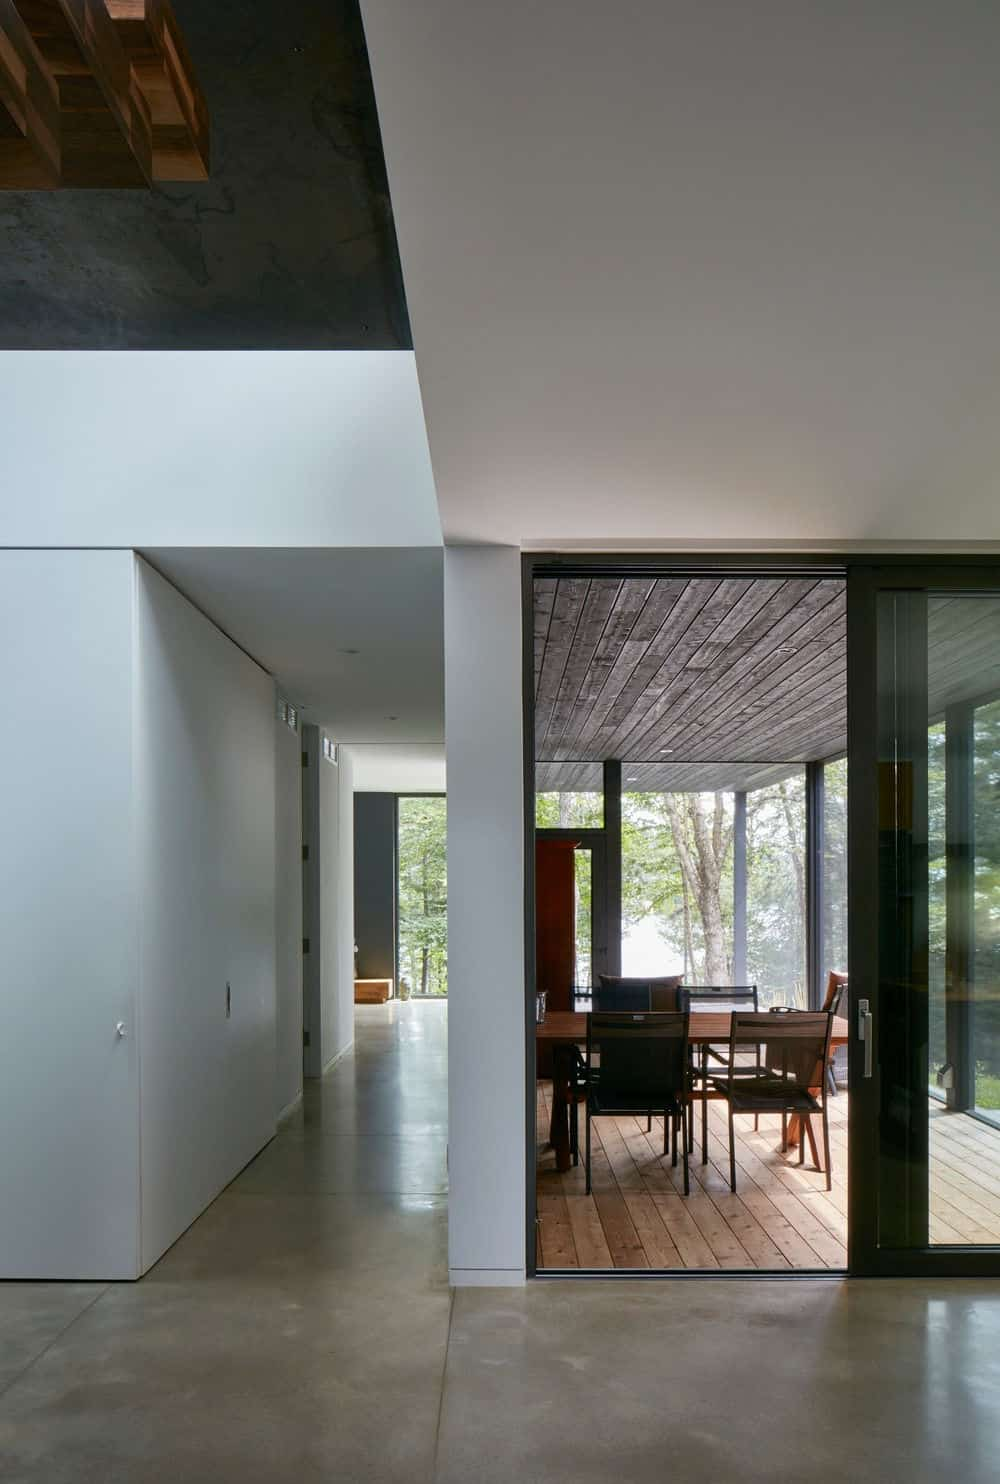 There's also a private dining room in the house with a hardwood flooring and glass walls. Photo Credit: James Brittain